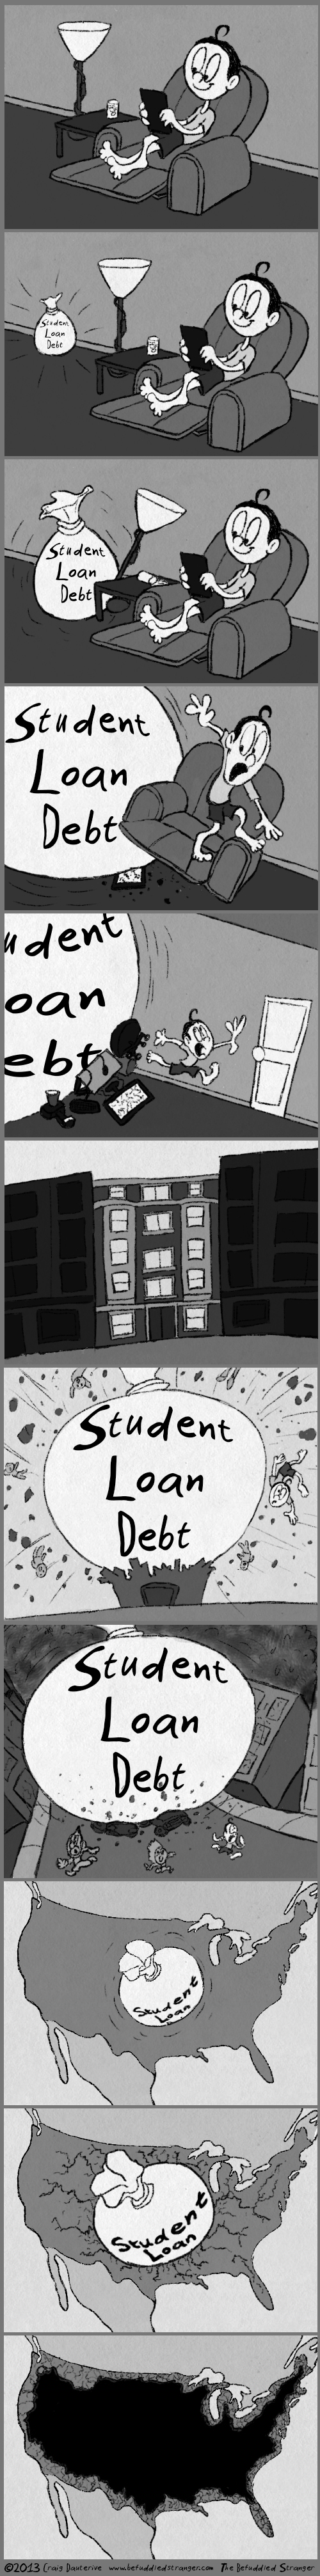 debt funny sad but true student loans web comics